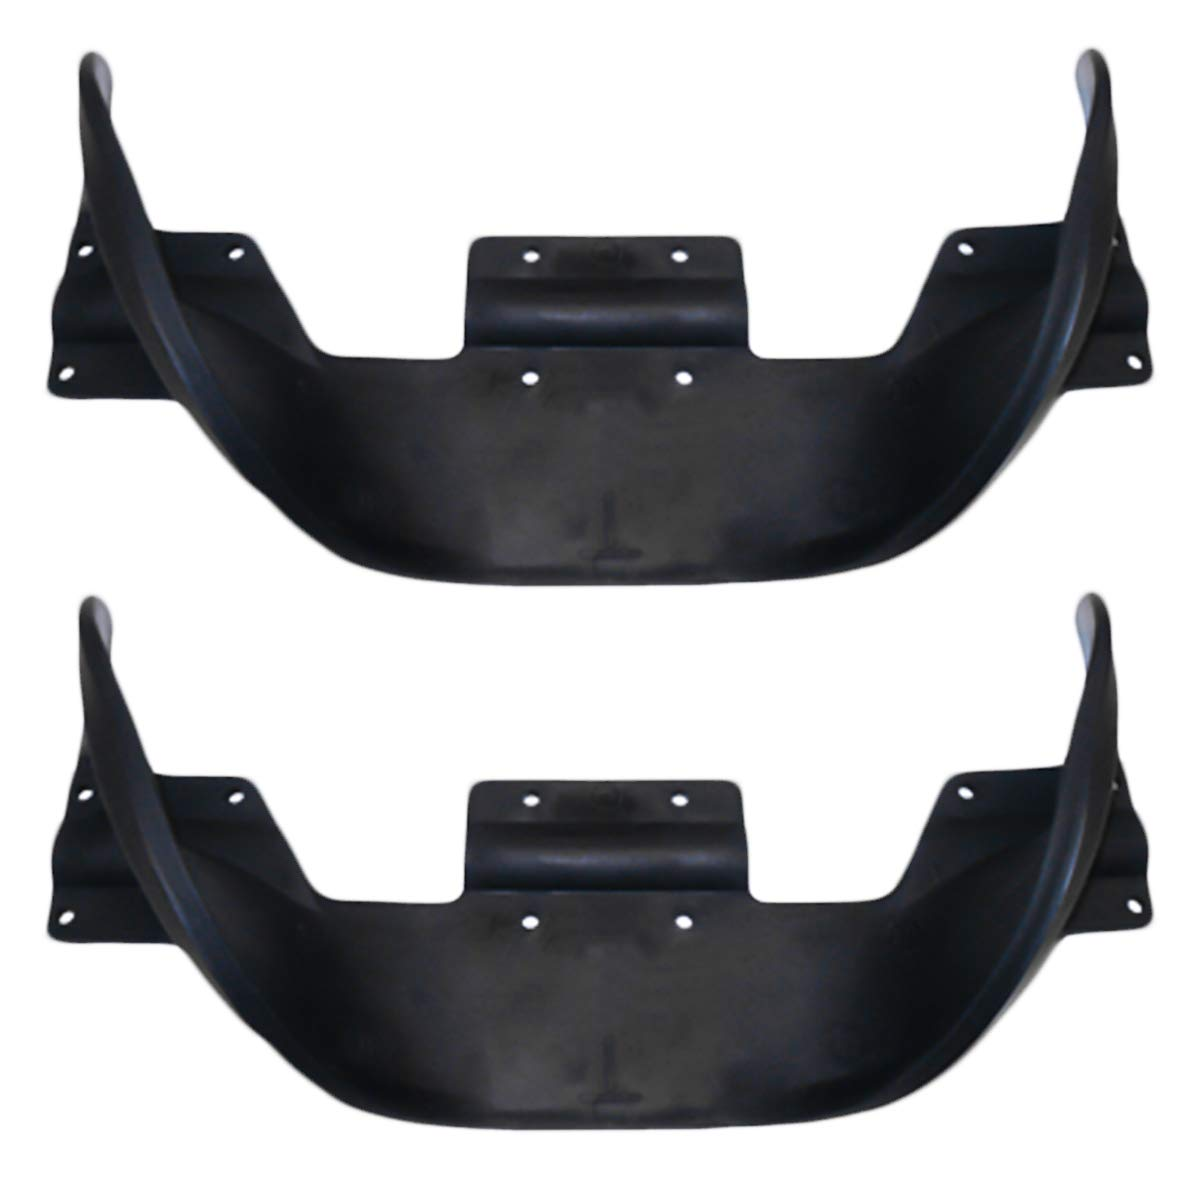 2PK Genuine Ariens Snow Blower Paddle Auger Rubber Impeller Half 03807000 SS722 722 by Replaces Ariens